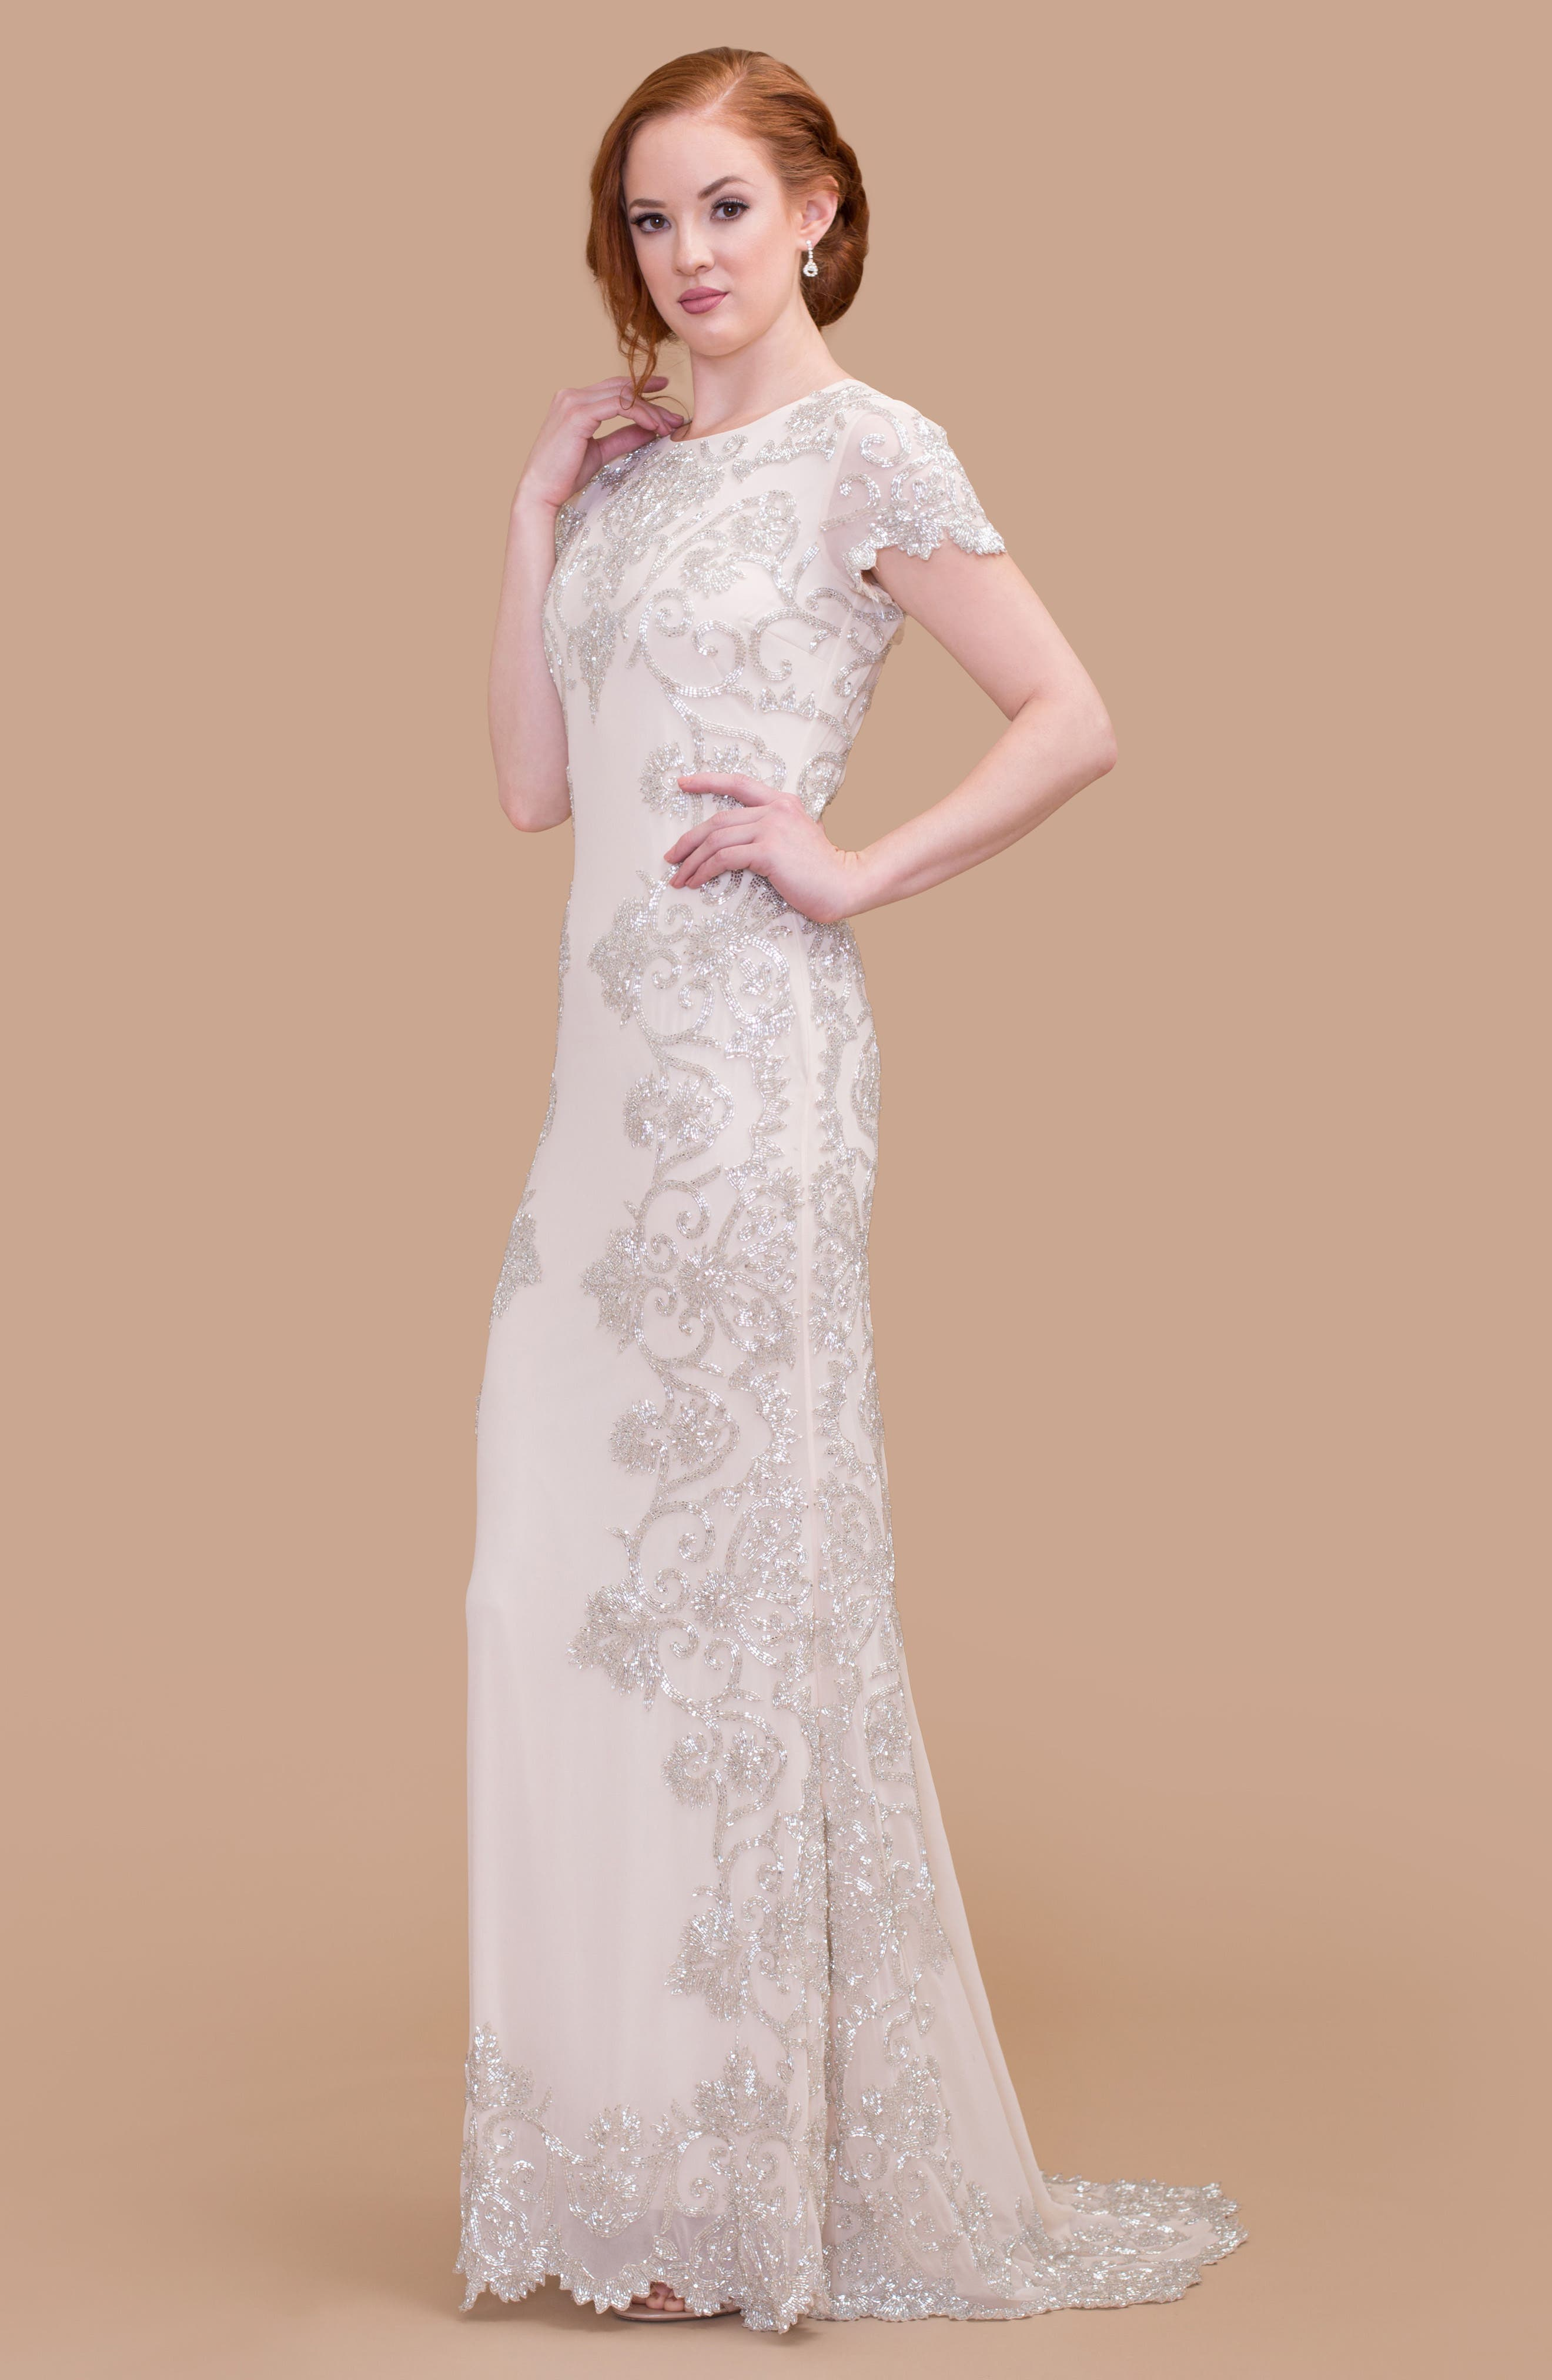 1920s Wedding Dresses- Art Deco Wedding Dress, Gatsby Wedding Dress Womens Lotus Threads Beaded Georgette Cap Sleeve Gown Size 4 - Ivory $639.98 AT vintagedancer.com